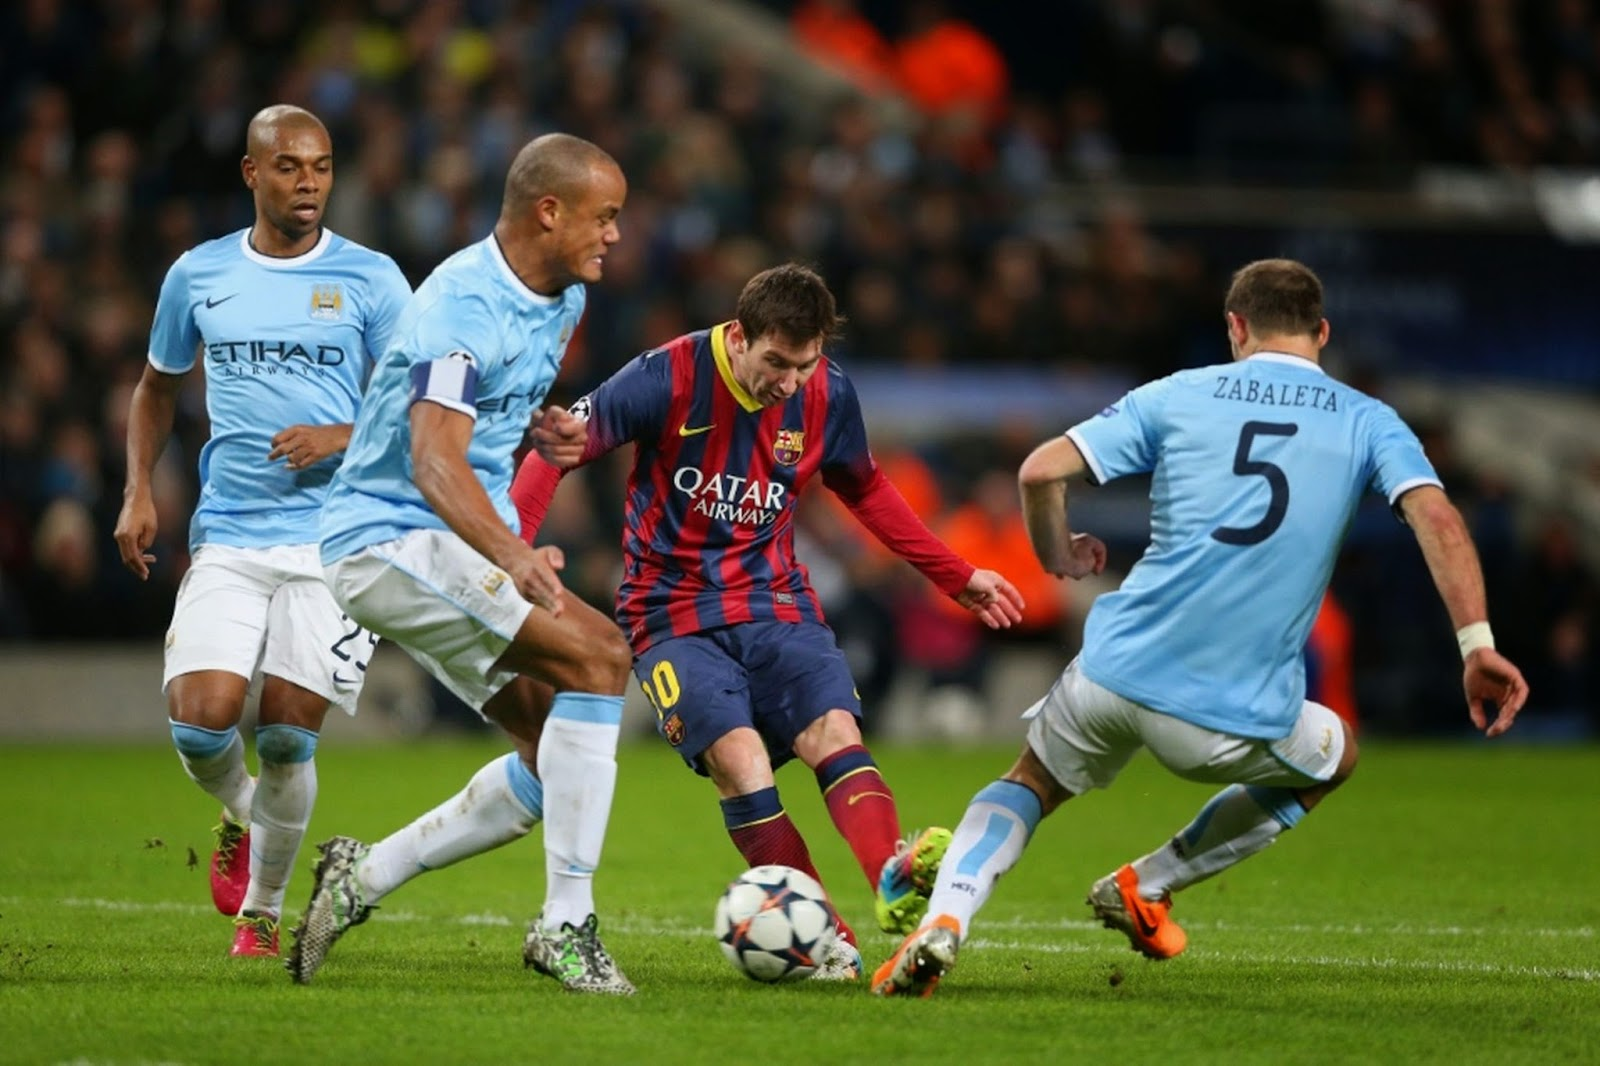 Manchester-City-v-Barcelona-UEFA-Champions-League-goals